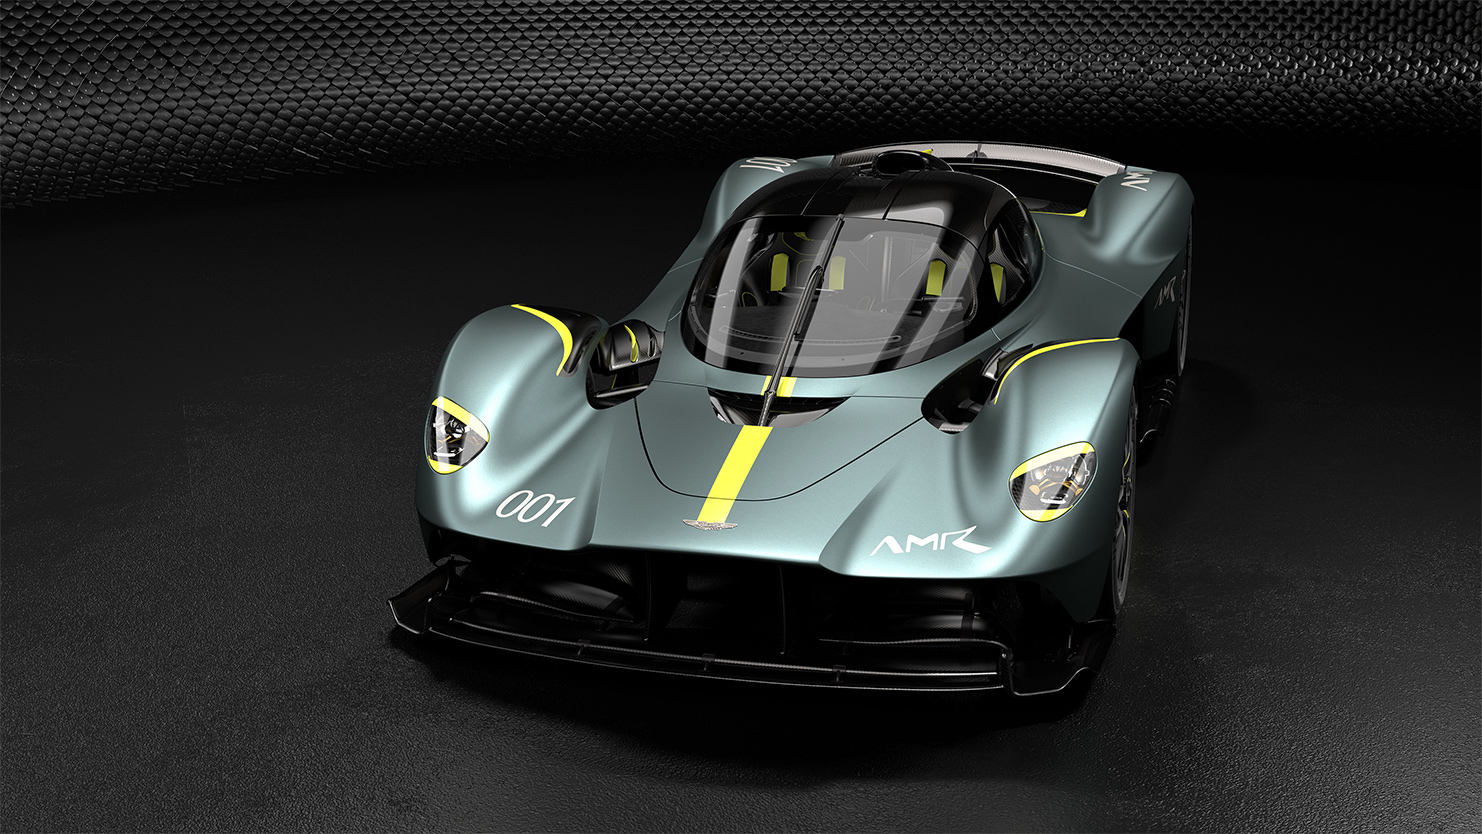 TrackWorthy - Aston Martin Valkyrie with AMR Track Performance Pack - Stirling Green and Lime livery (1)